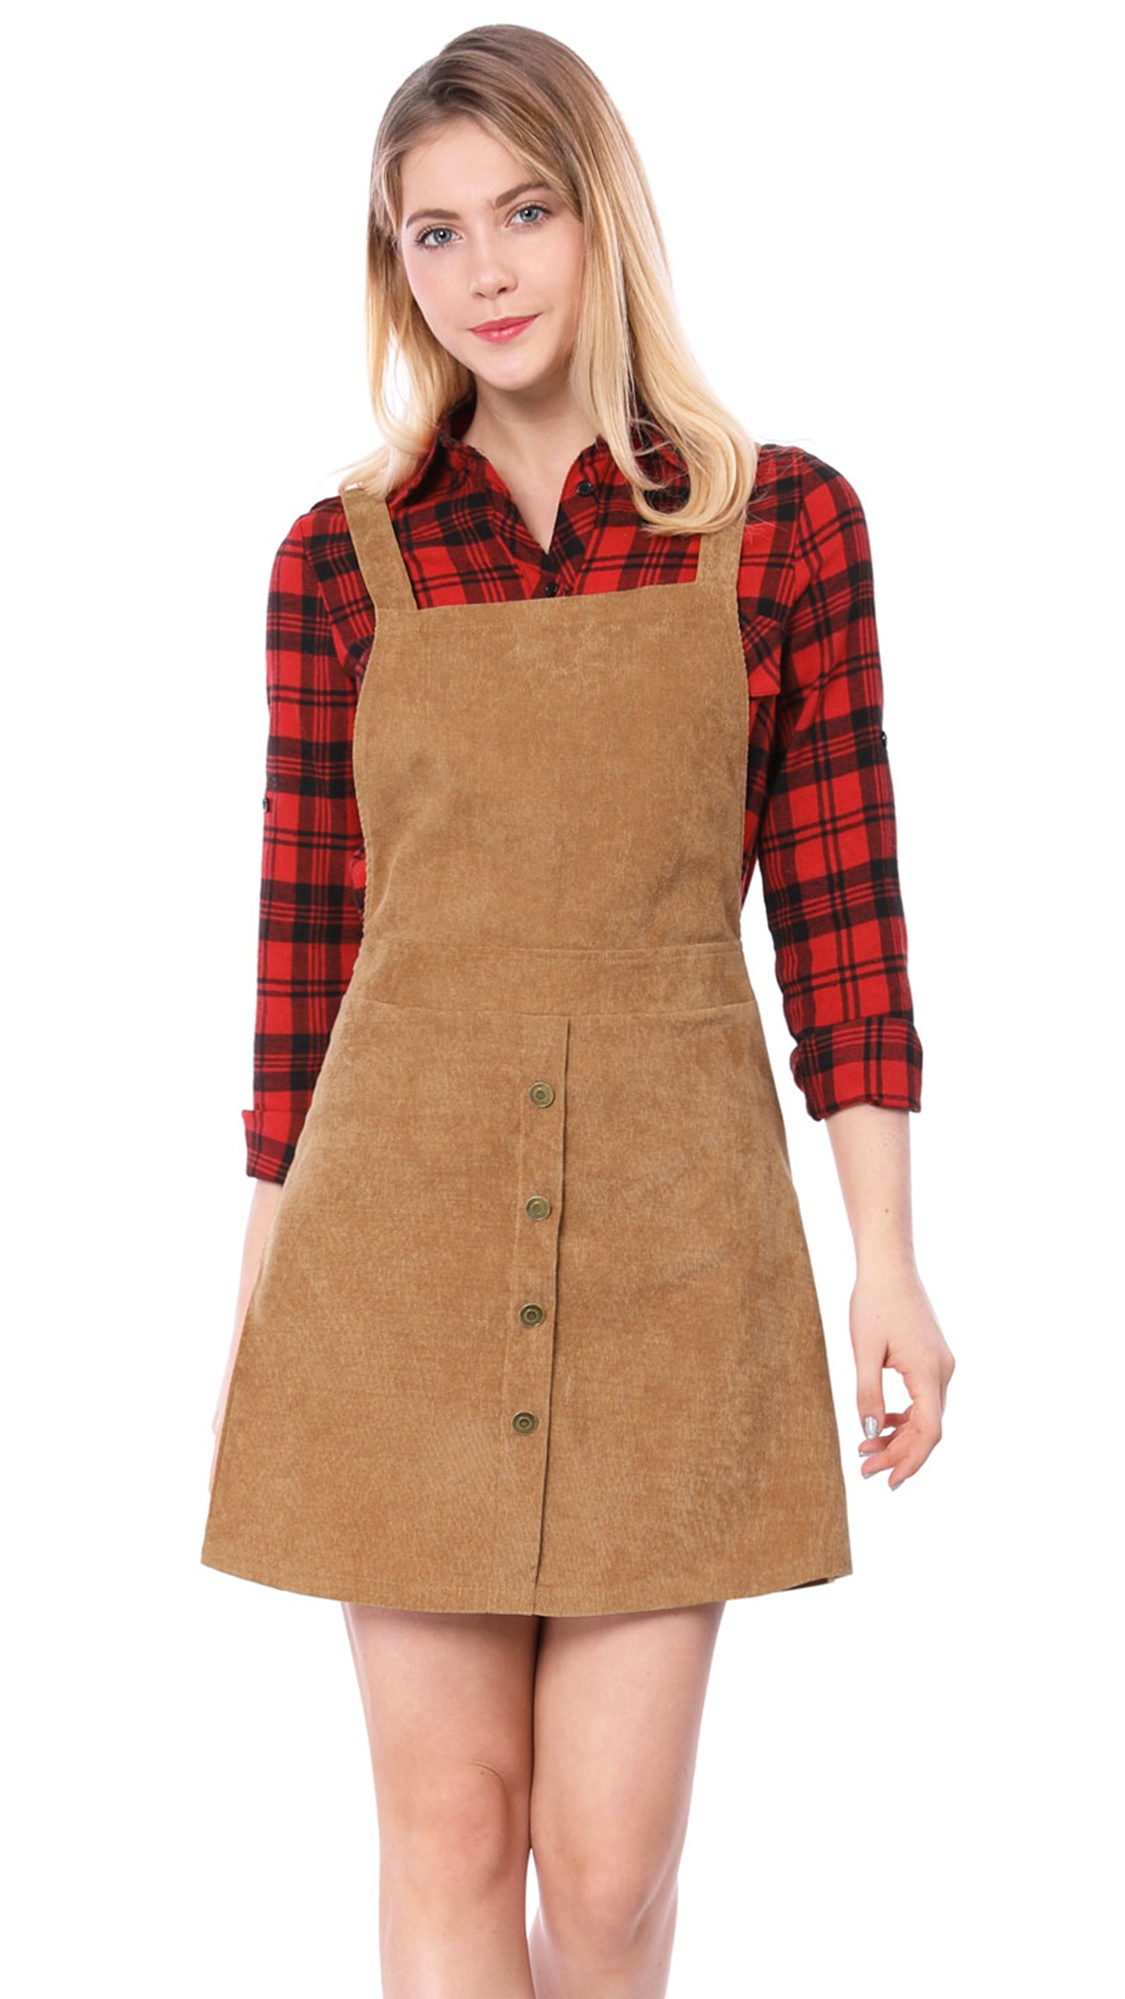 e95b4e66aa1 Brown Corduroy Overall Skirt